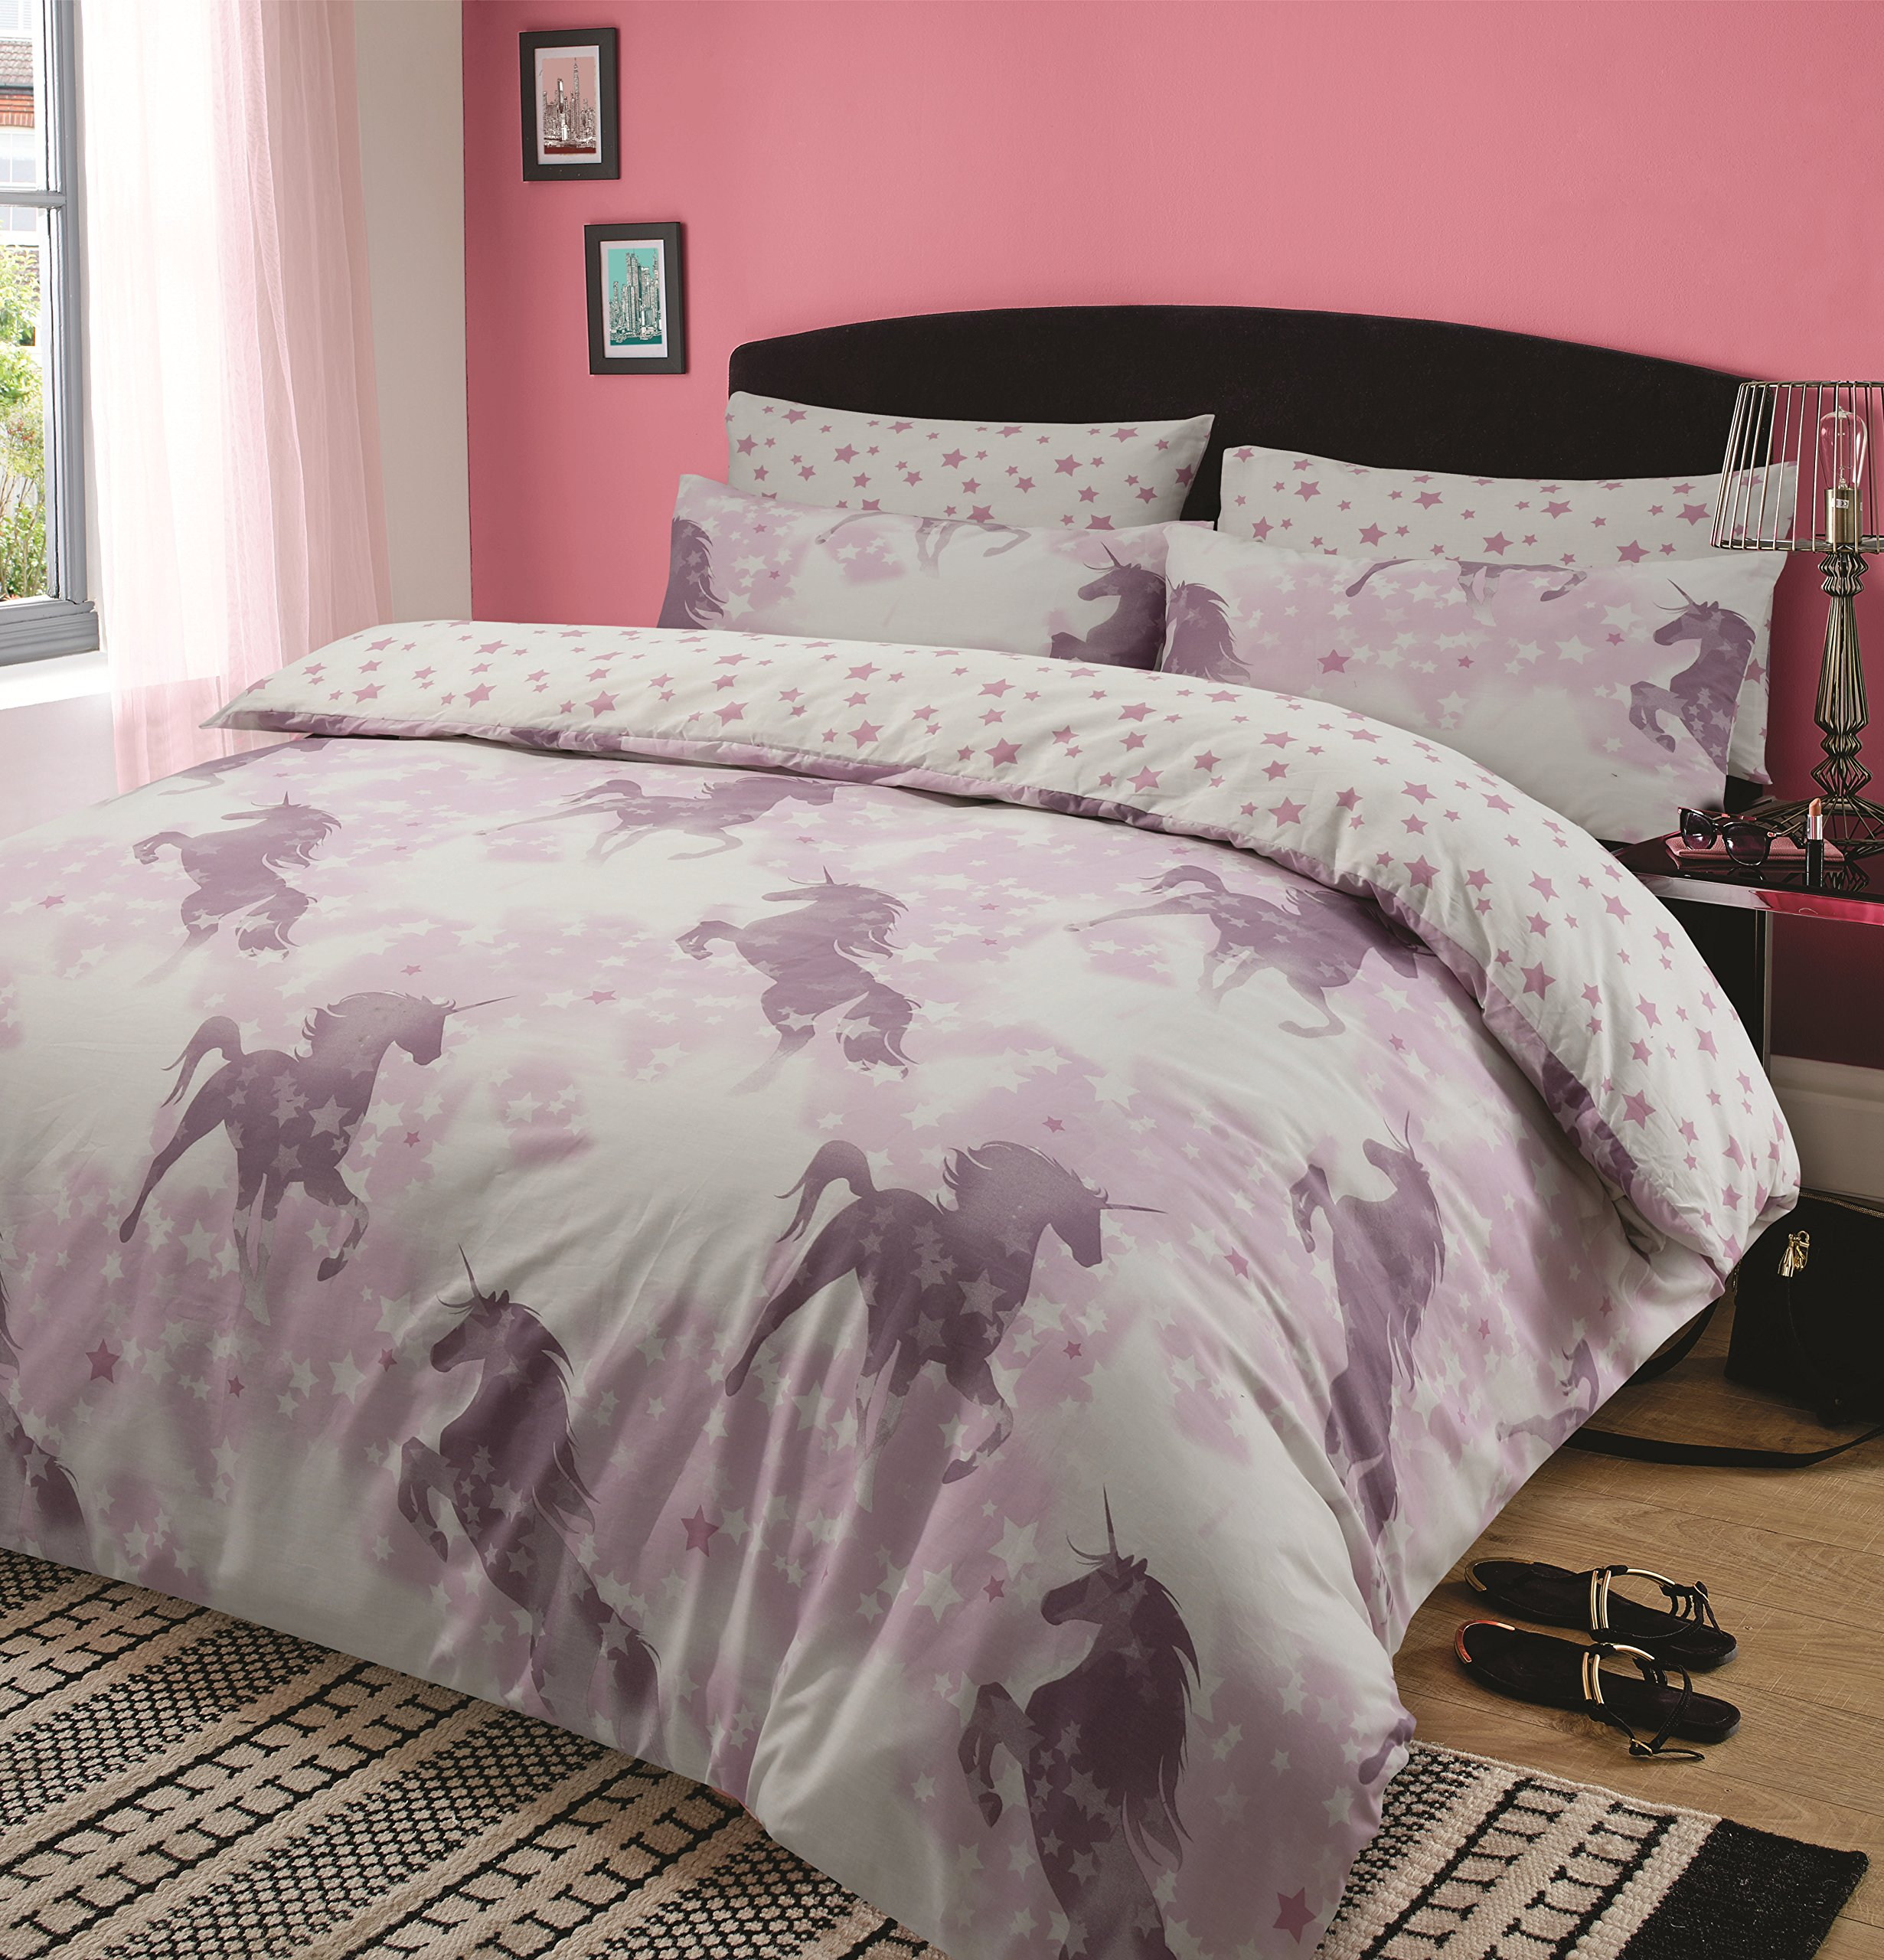 sets cover various in sizes girls curtain of and gopelling with pink horse bedding matching curtains net full gopellingnet bedroom new duvet show size